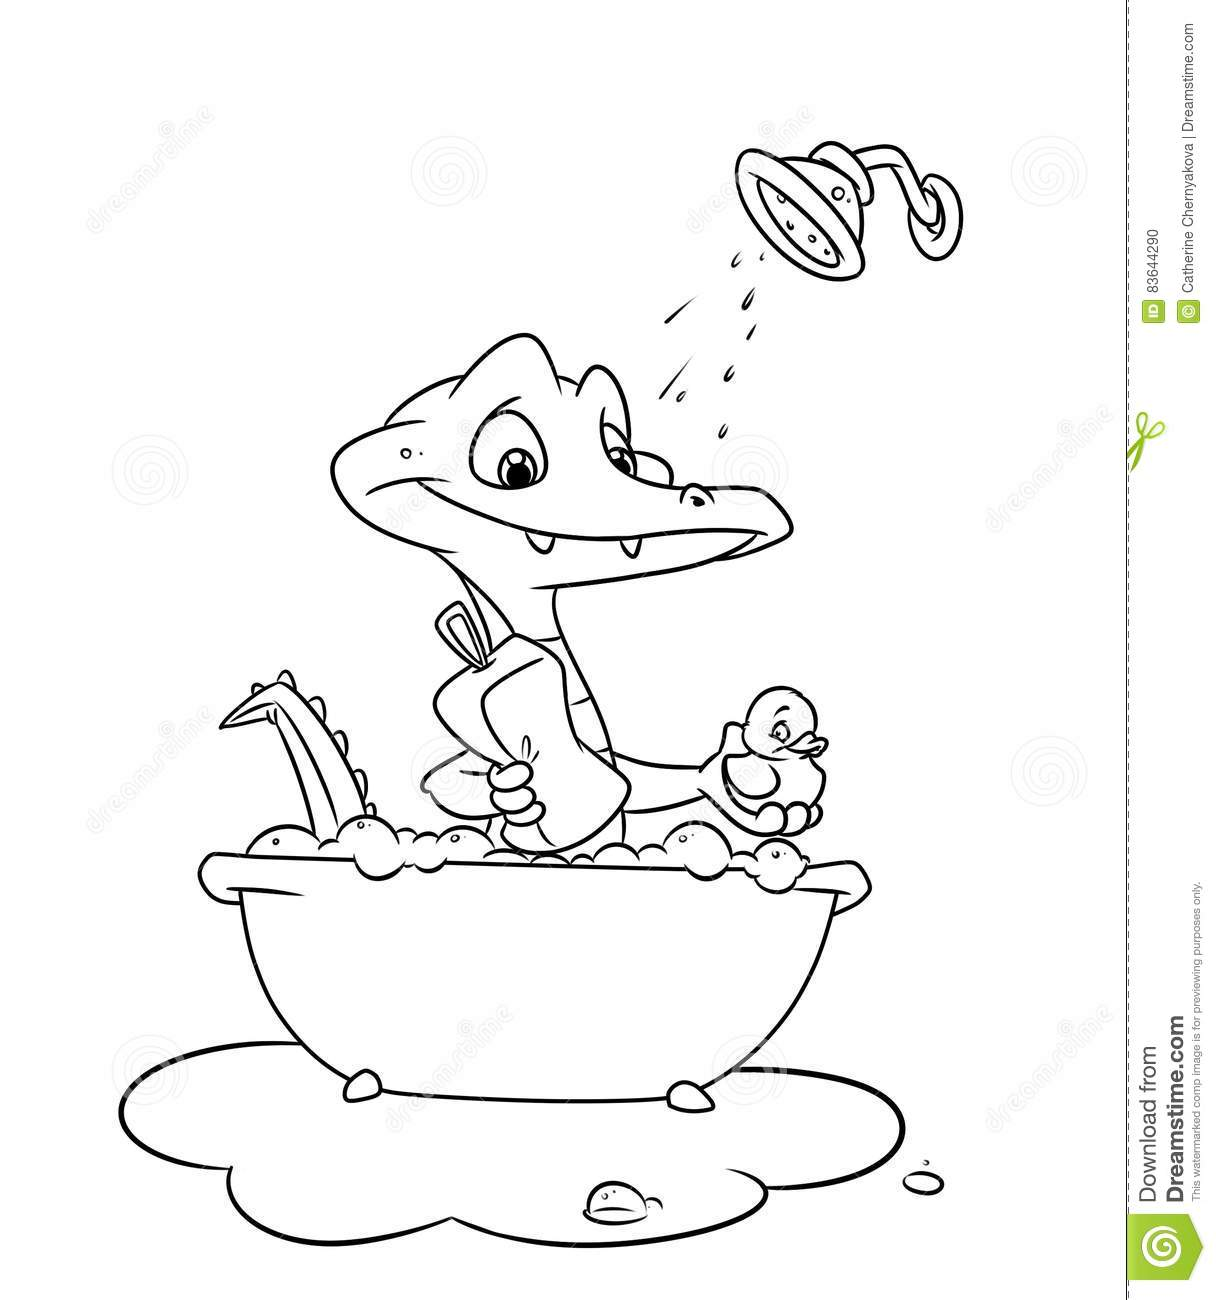 little crocodile swims bathroom coloring pages stock illustration